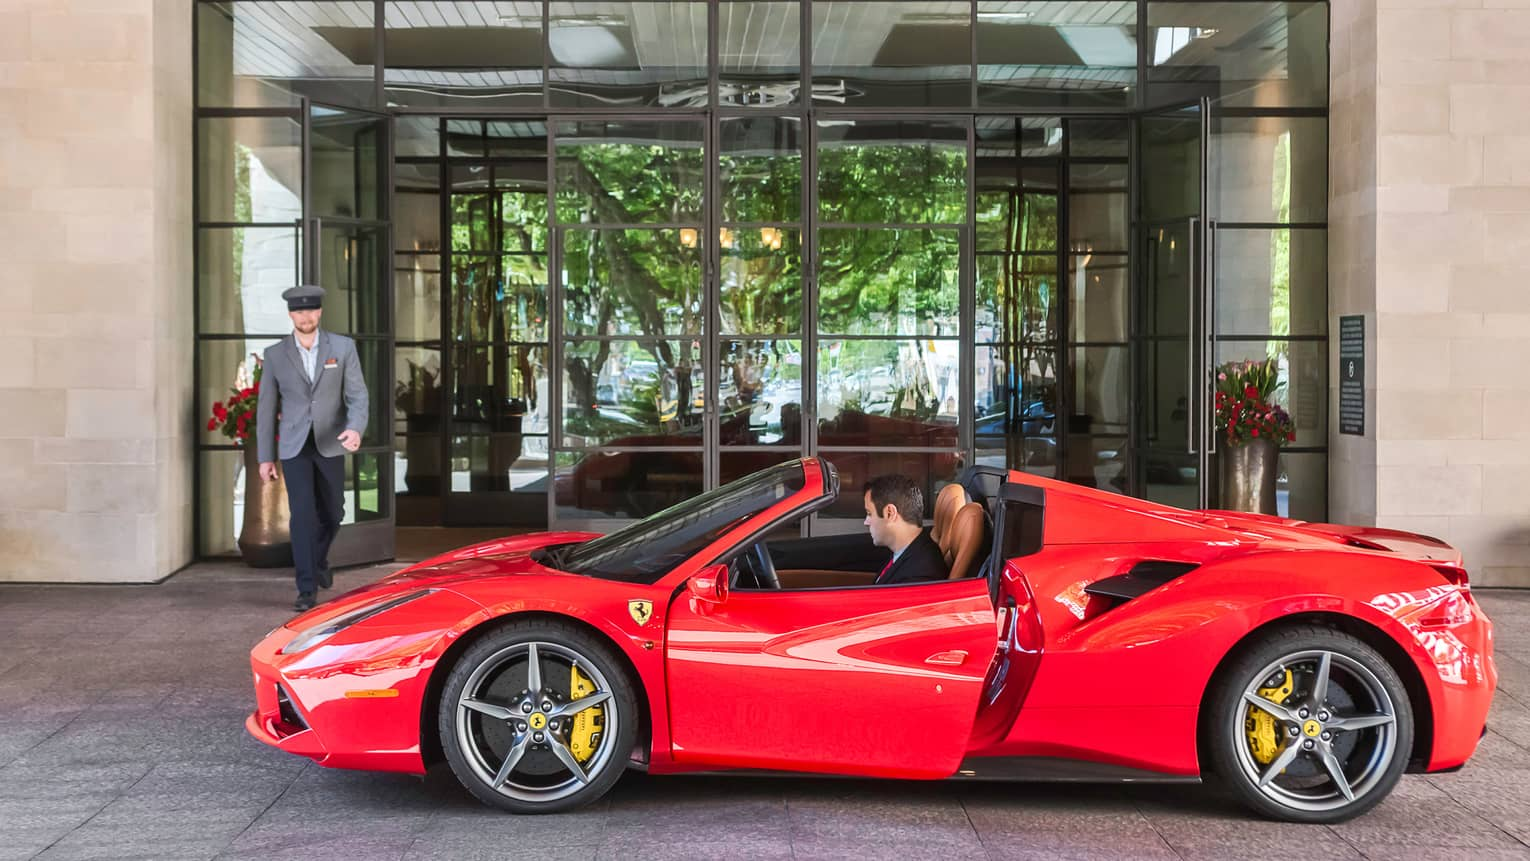 Hotel staff walks towards man in driver's seat of red sports car at Four Seasons Hotel Austin entrance